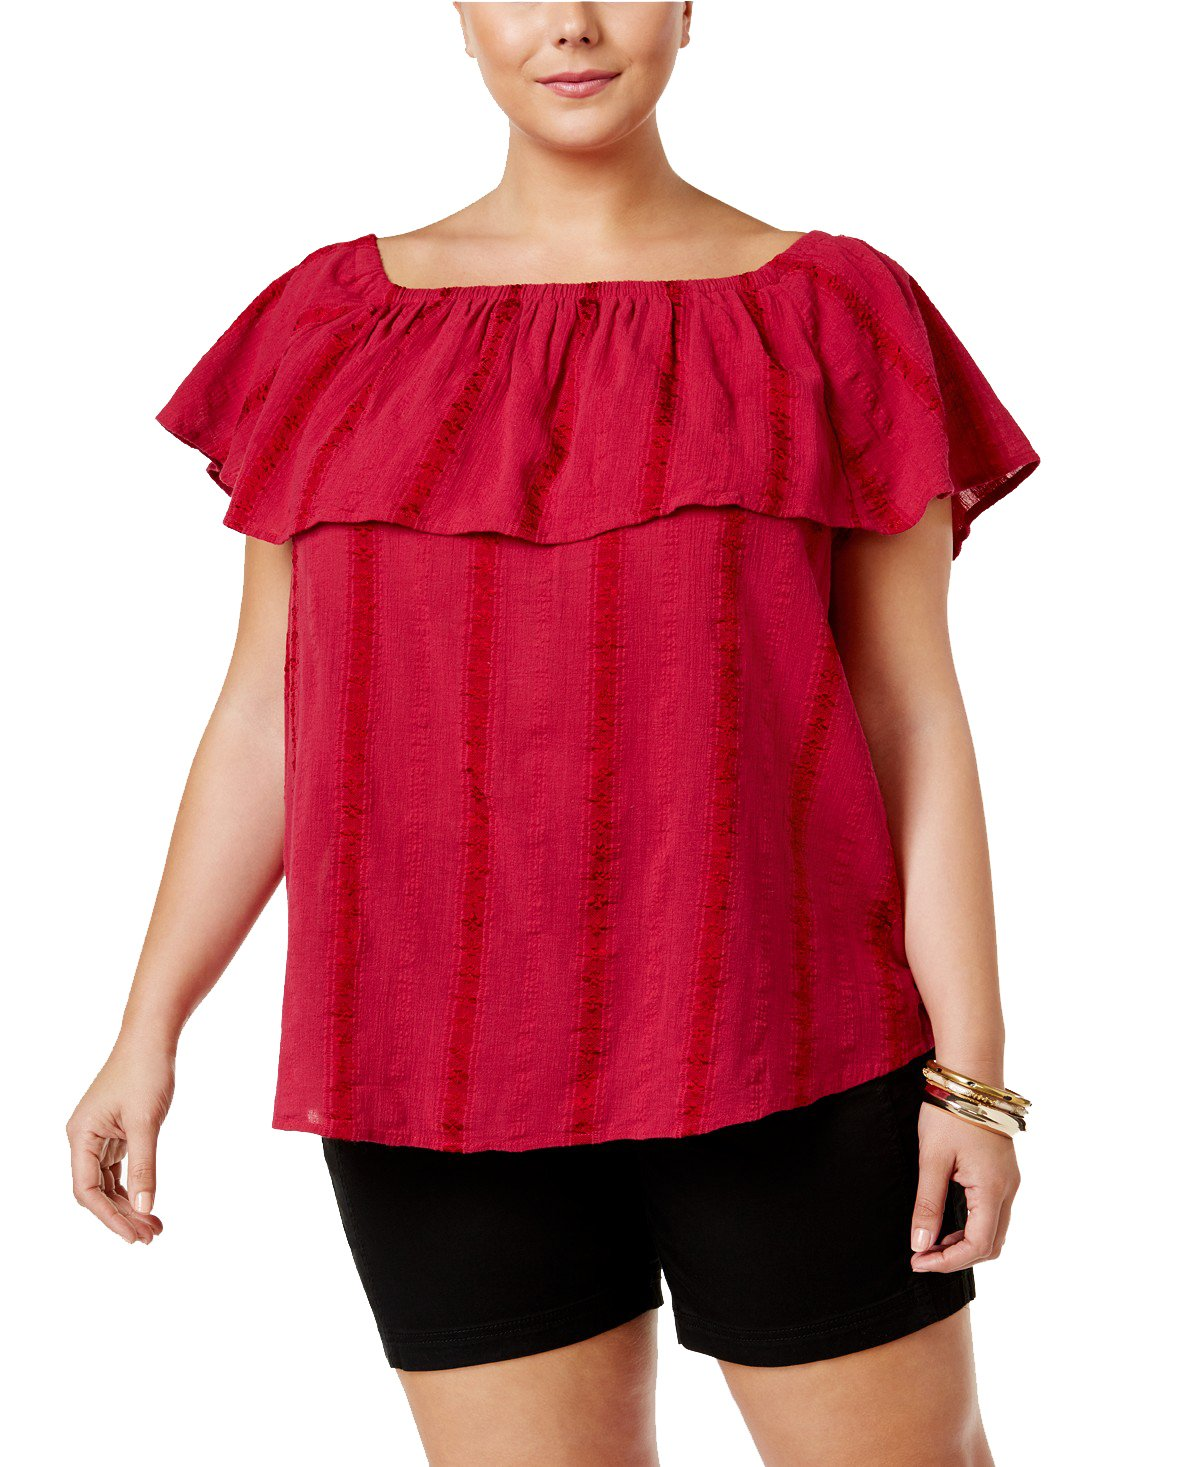 Style & Co. Plus Size Textured Off-The-Shoulder Top in Magenta Punch (2X)